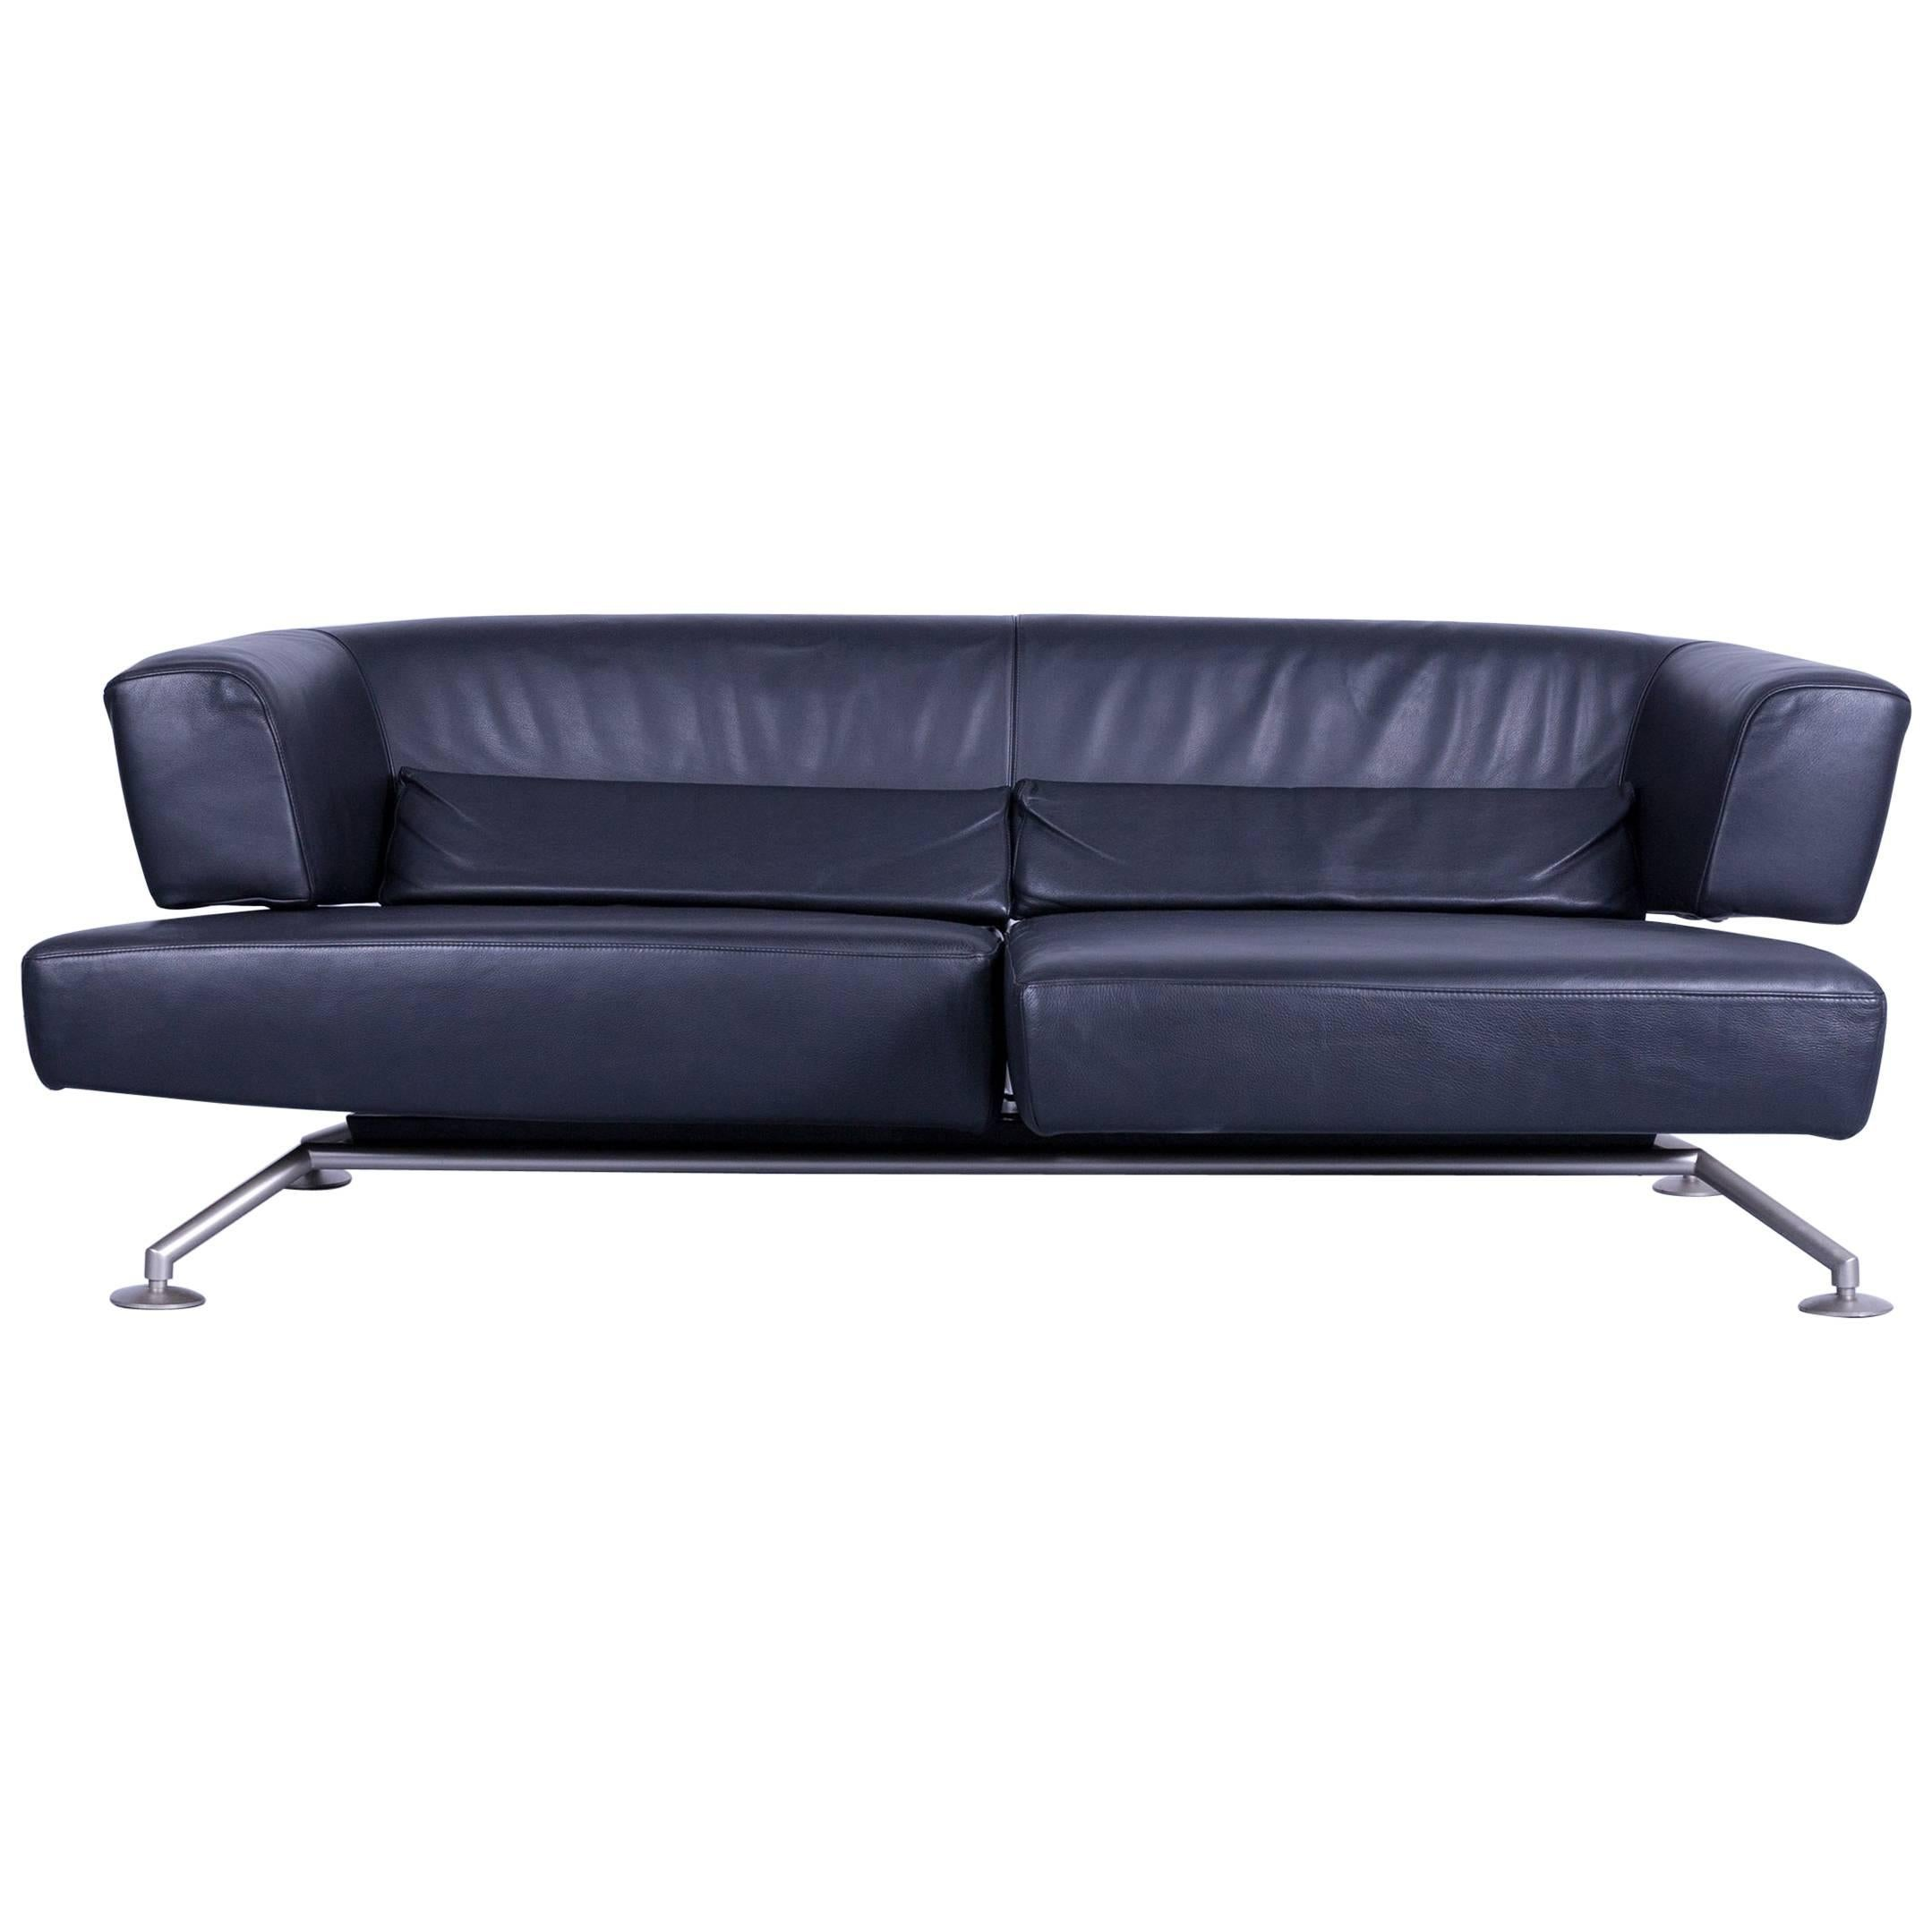 Sofa recamiere top lederlook liege sofa recamiere lounge for Sofa recamiere